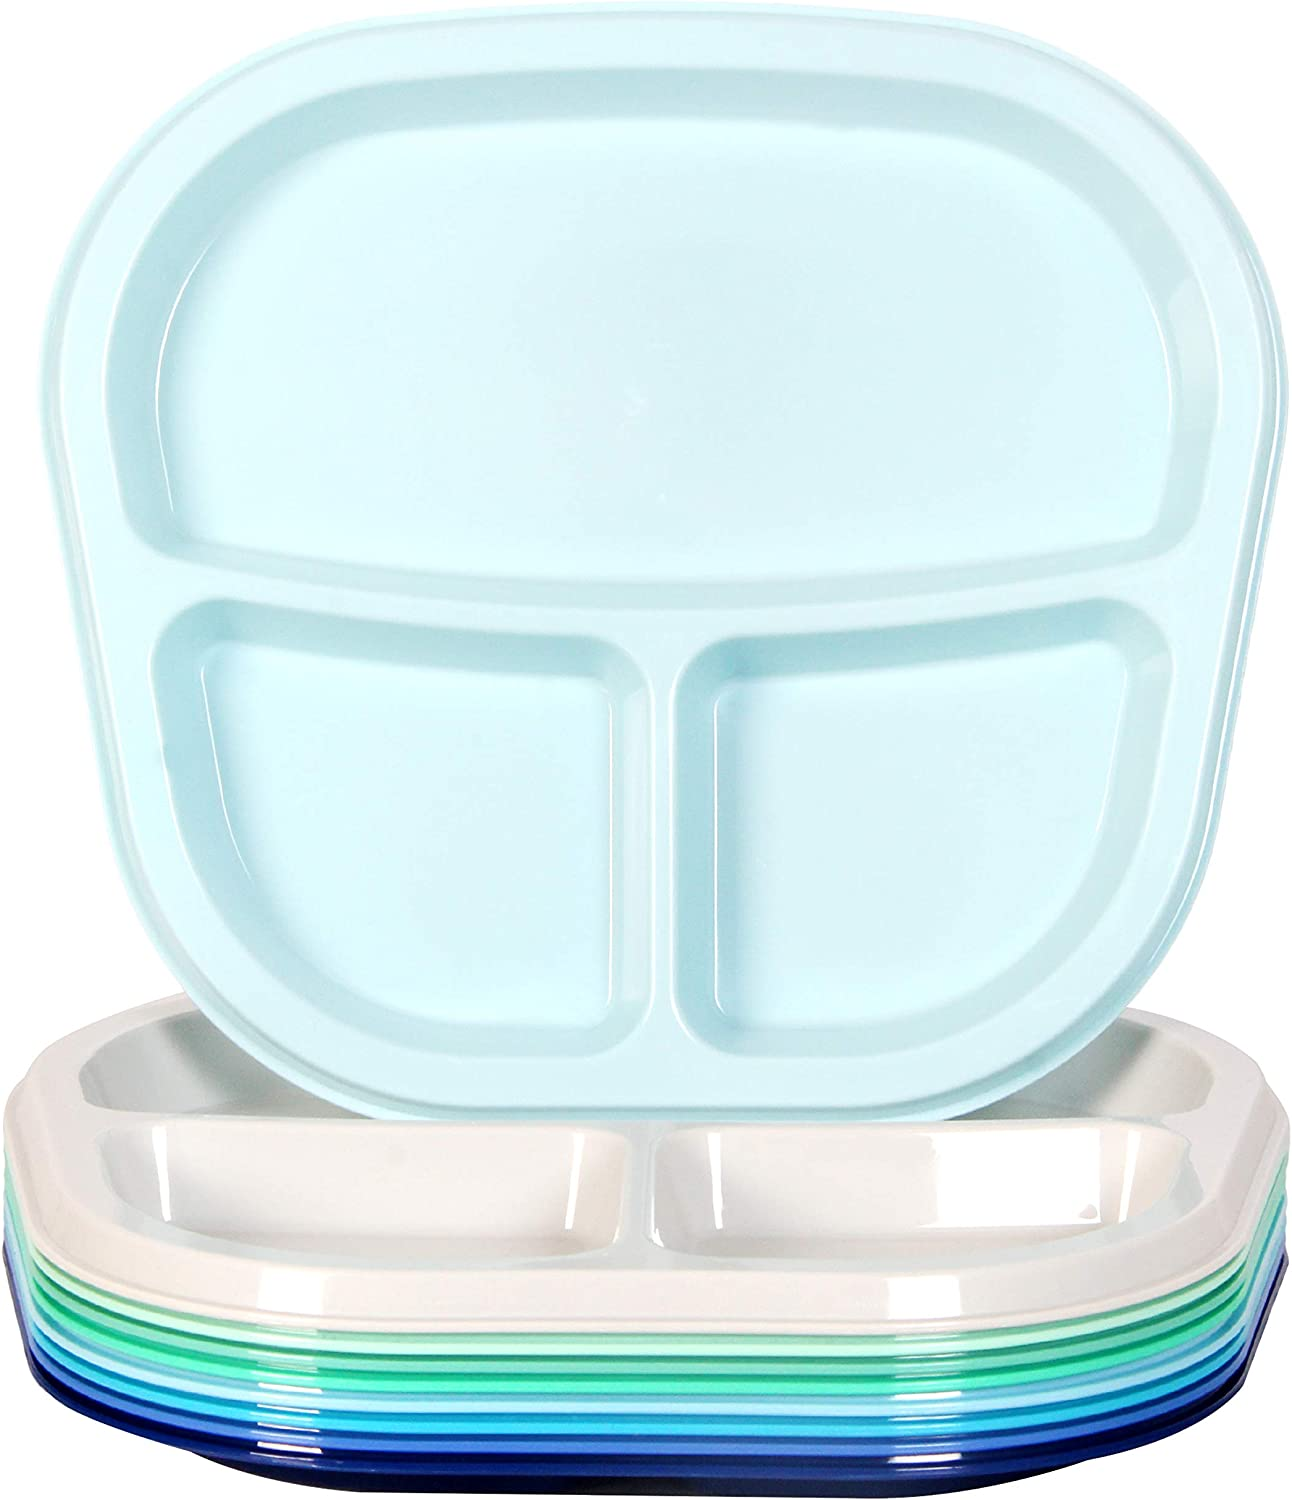 Youngever 3-Compartment Divided Plastic Kids Tray, 3 Compartment Plates, Set of 9 in 9 Coastal Colors